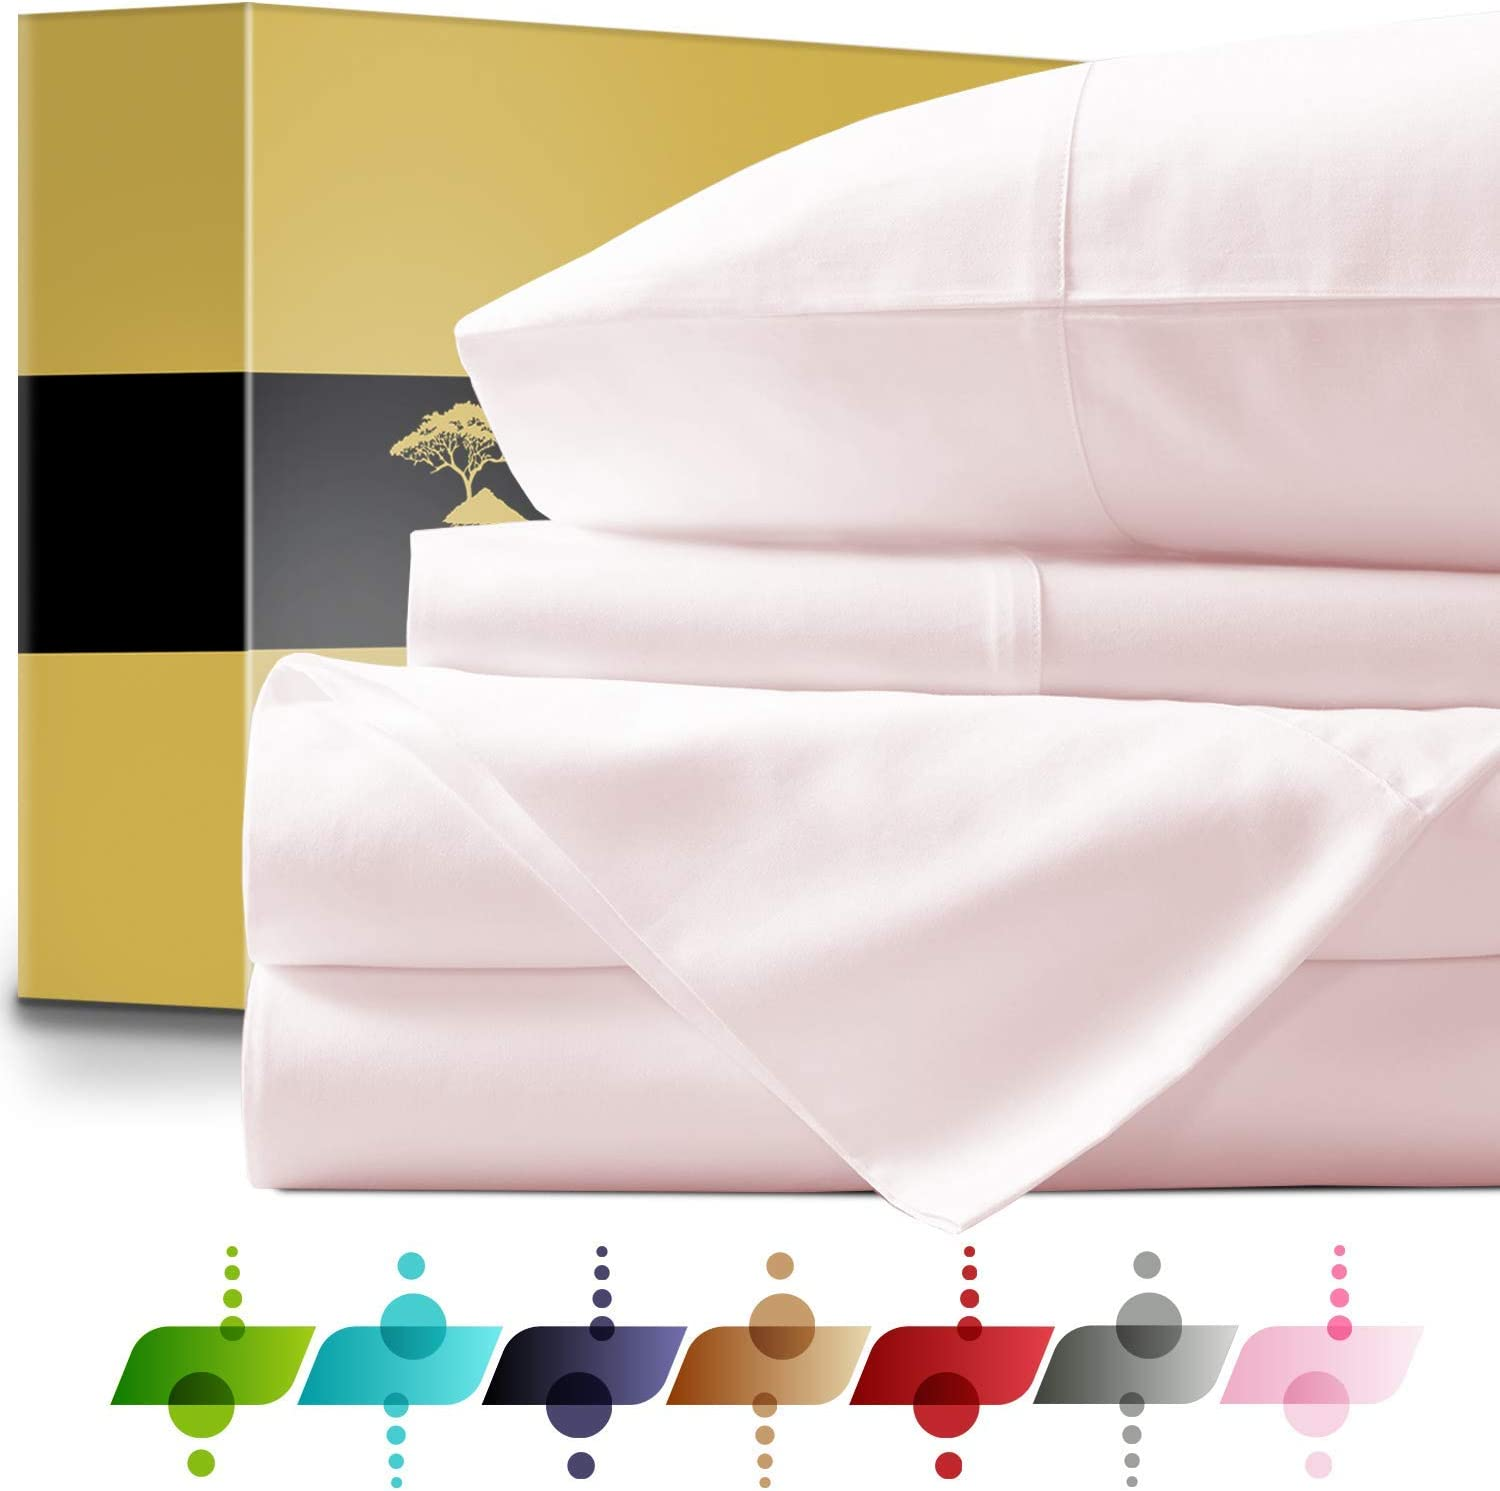 Urban Hut Egyptian Cotton Sheets Set (4 Piece) 1000 Thread Count - Bedspread Deep Pocket Premium Bedding Set, Luxury Bed Sheets for Hotel Collection Soft Sateen Weave (Queen, Blush)